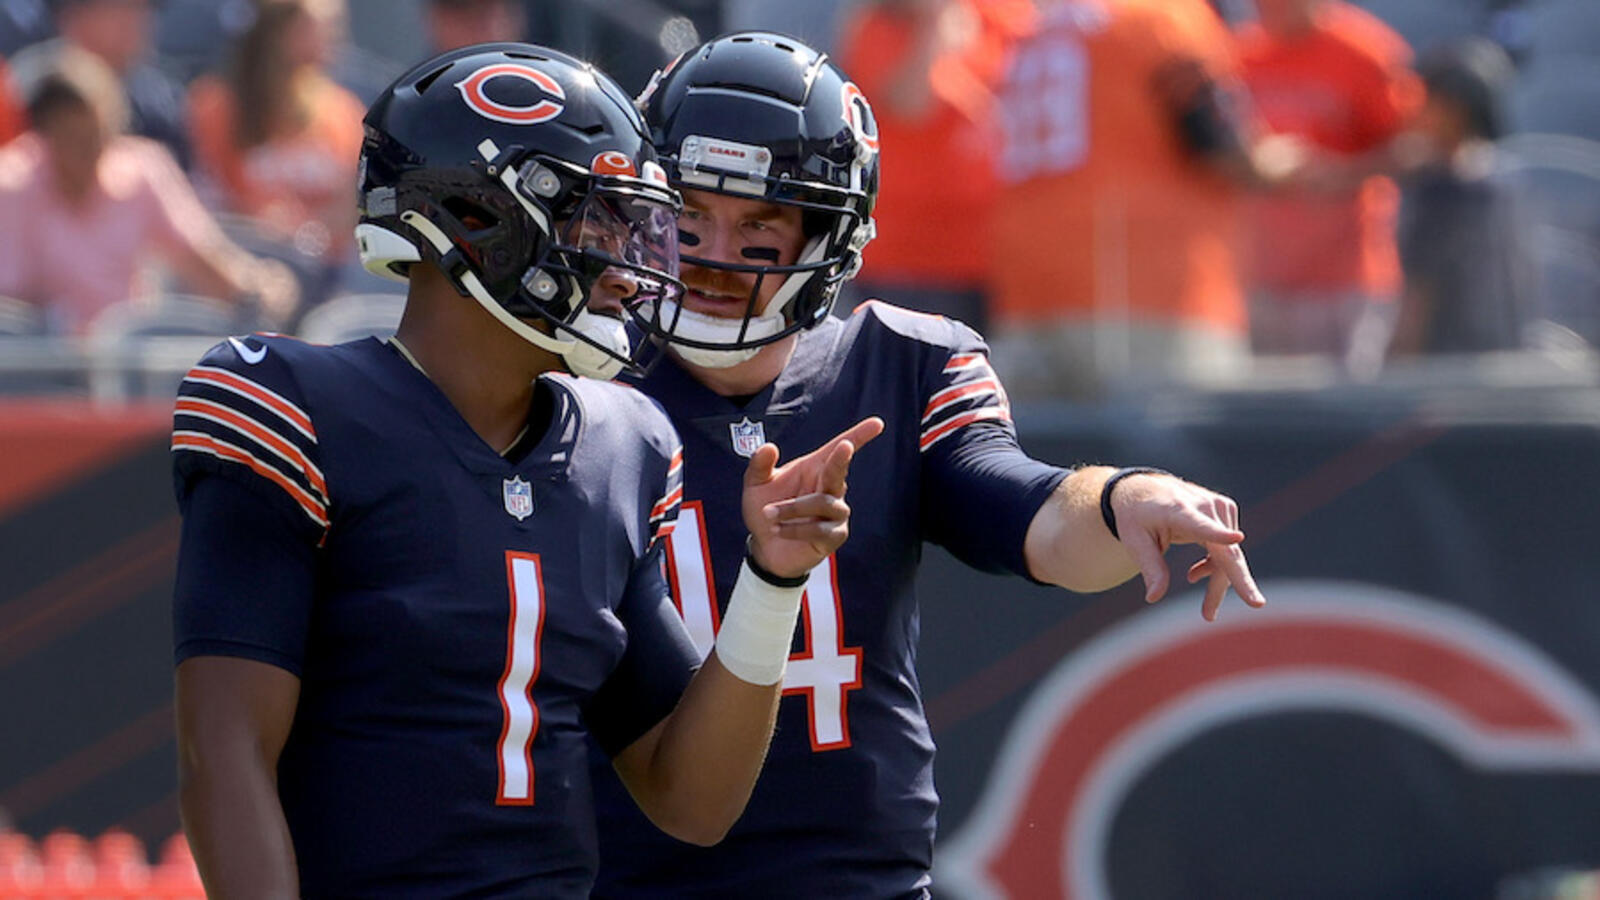 Major Update On Chicago Bears' Quarterback Situation